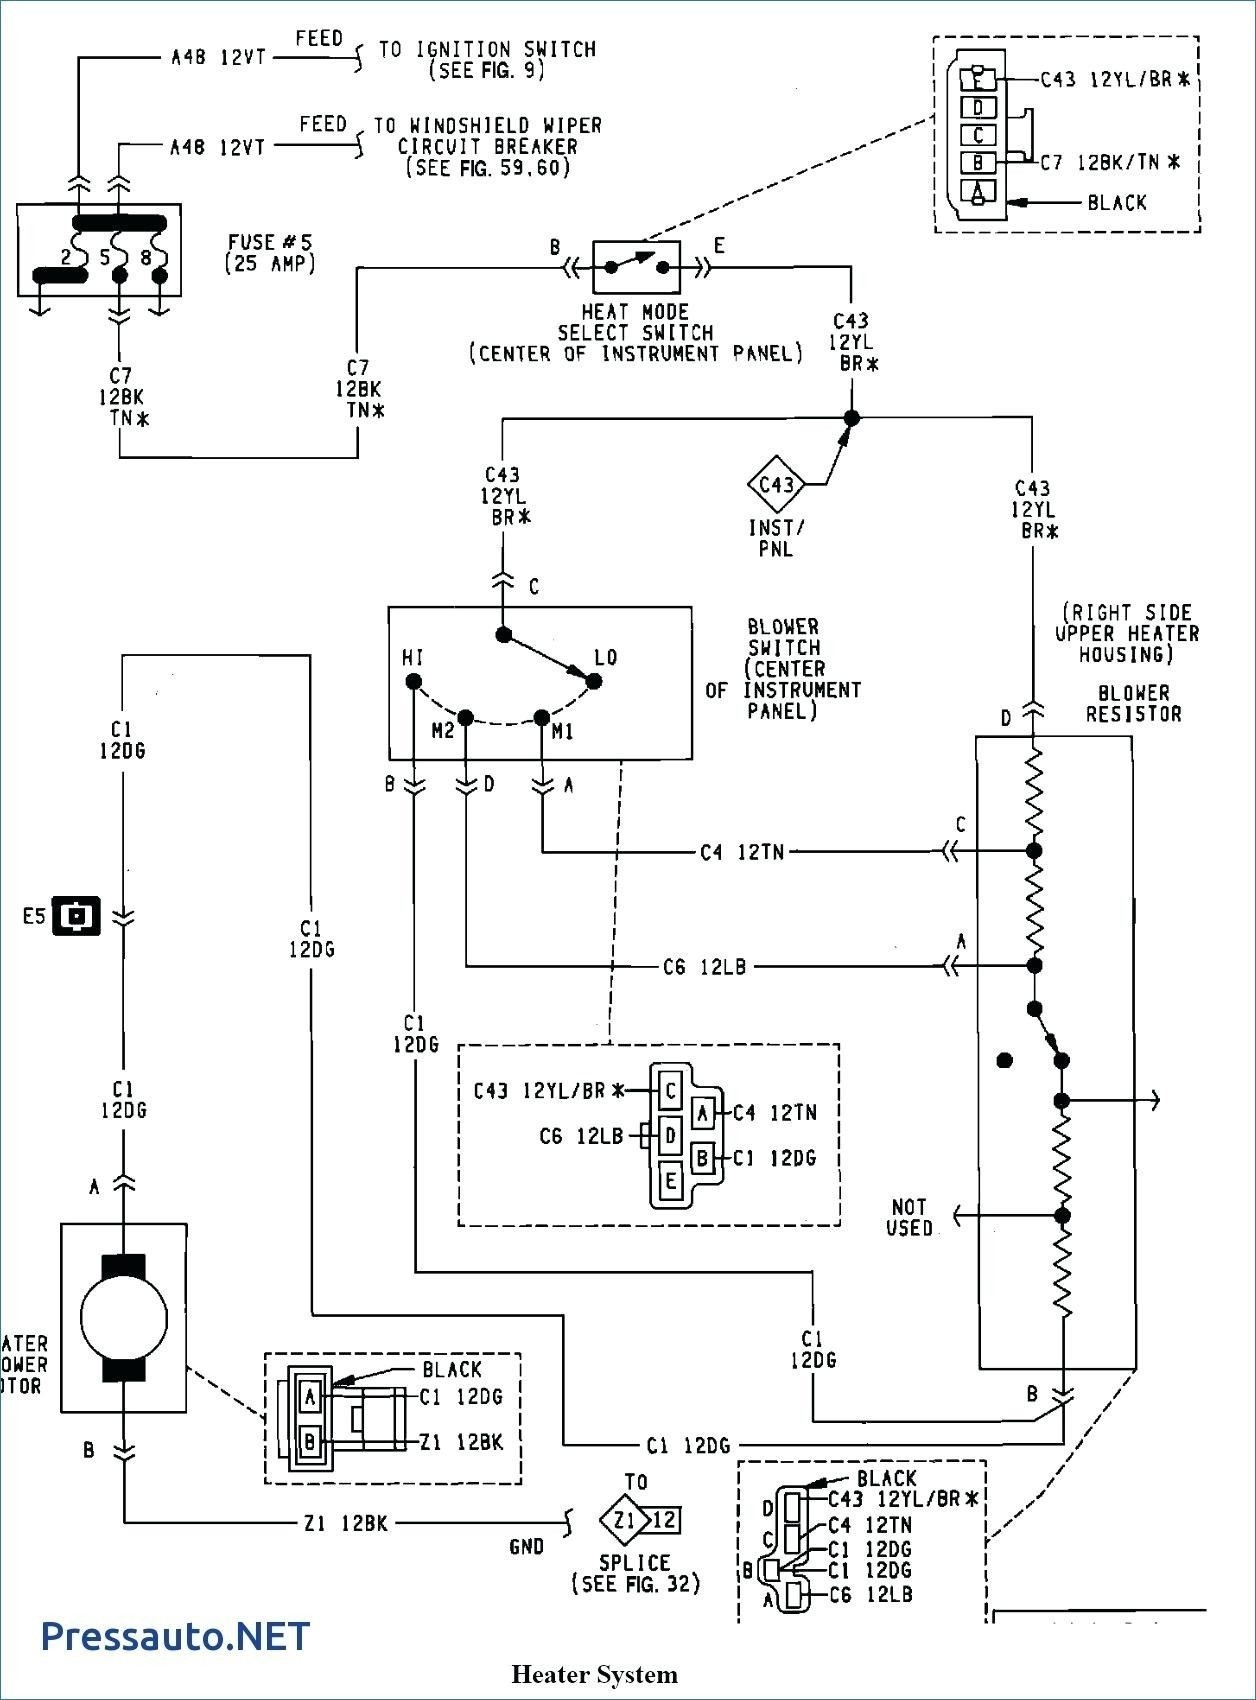 97 Jeep Grand Cherokee Infinity Gold Wiring Diagram